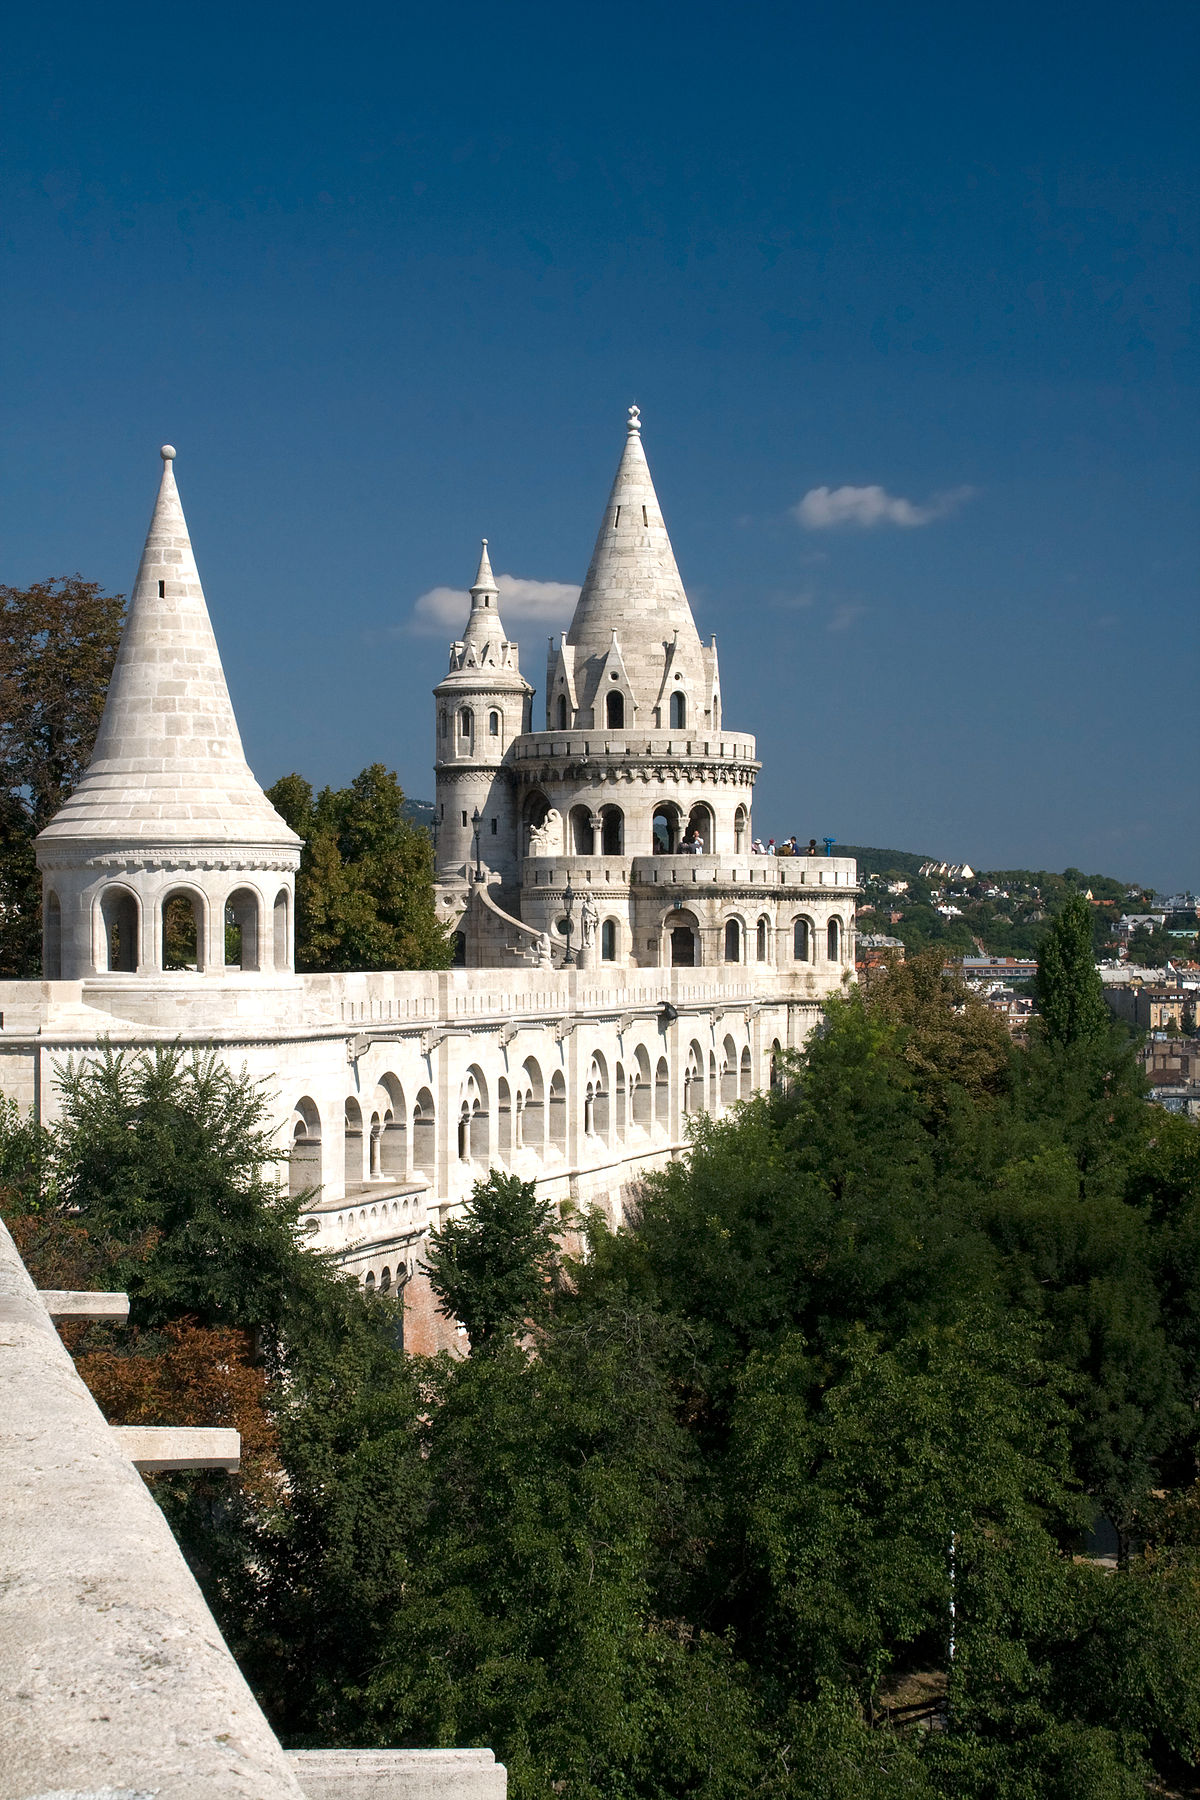 Budapestfishermansbastionavertical.jpg